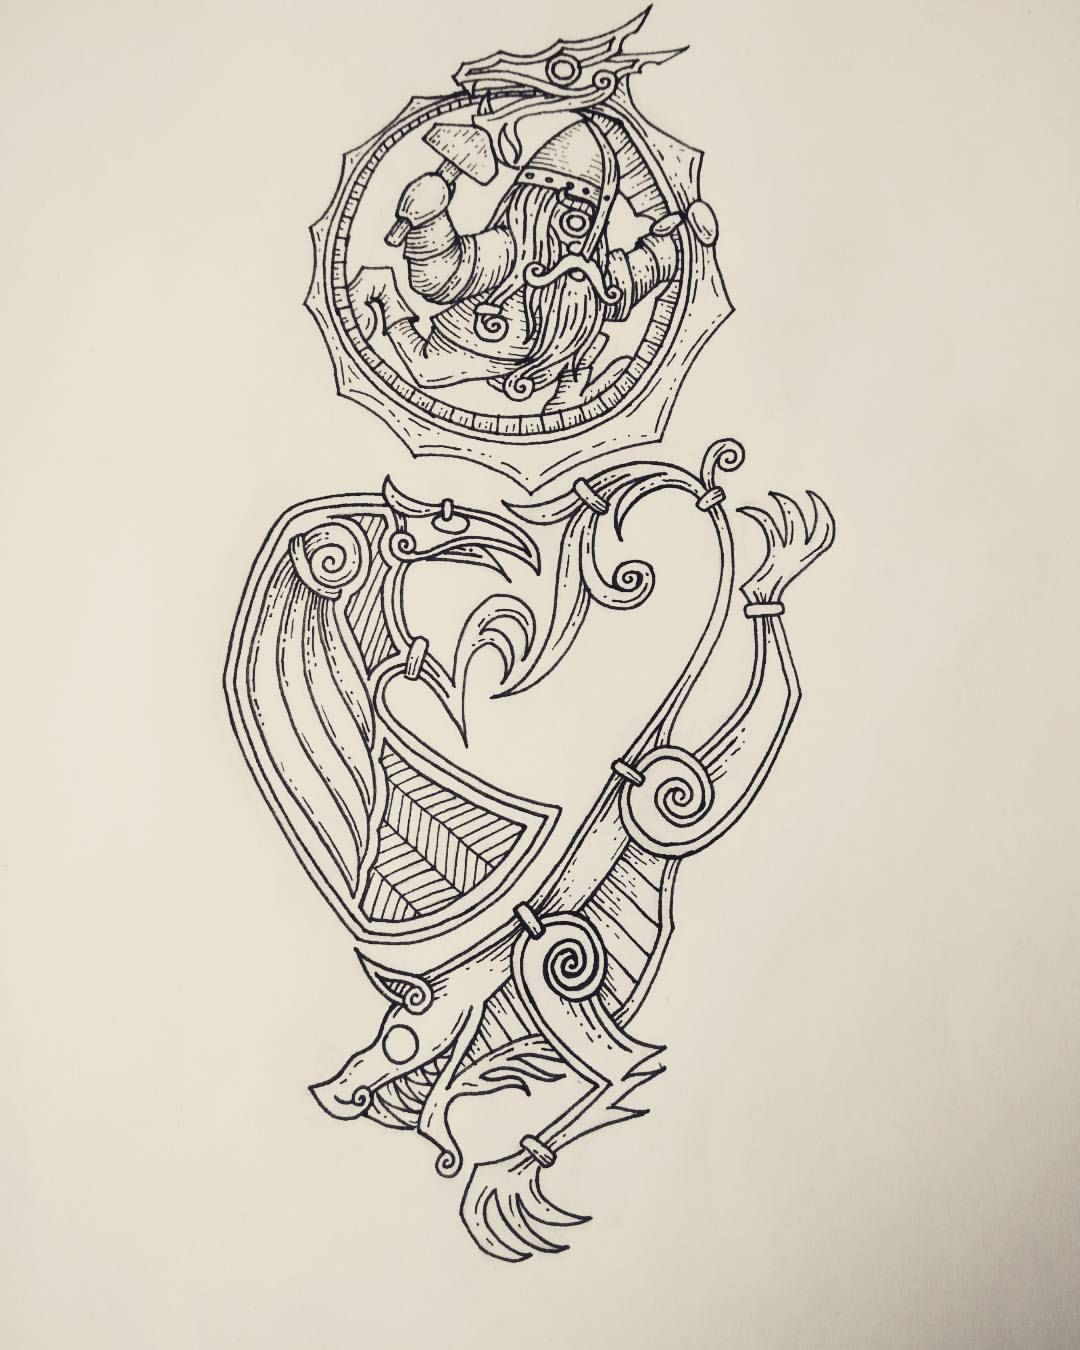 A half sleeve tattoo design with a Norse mythology theme